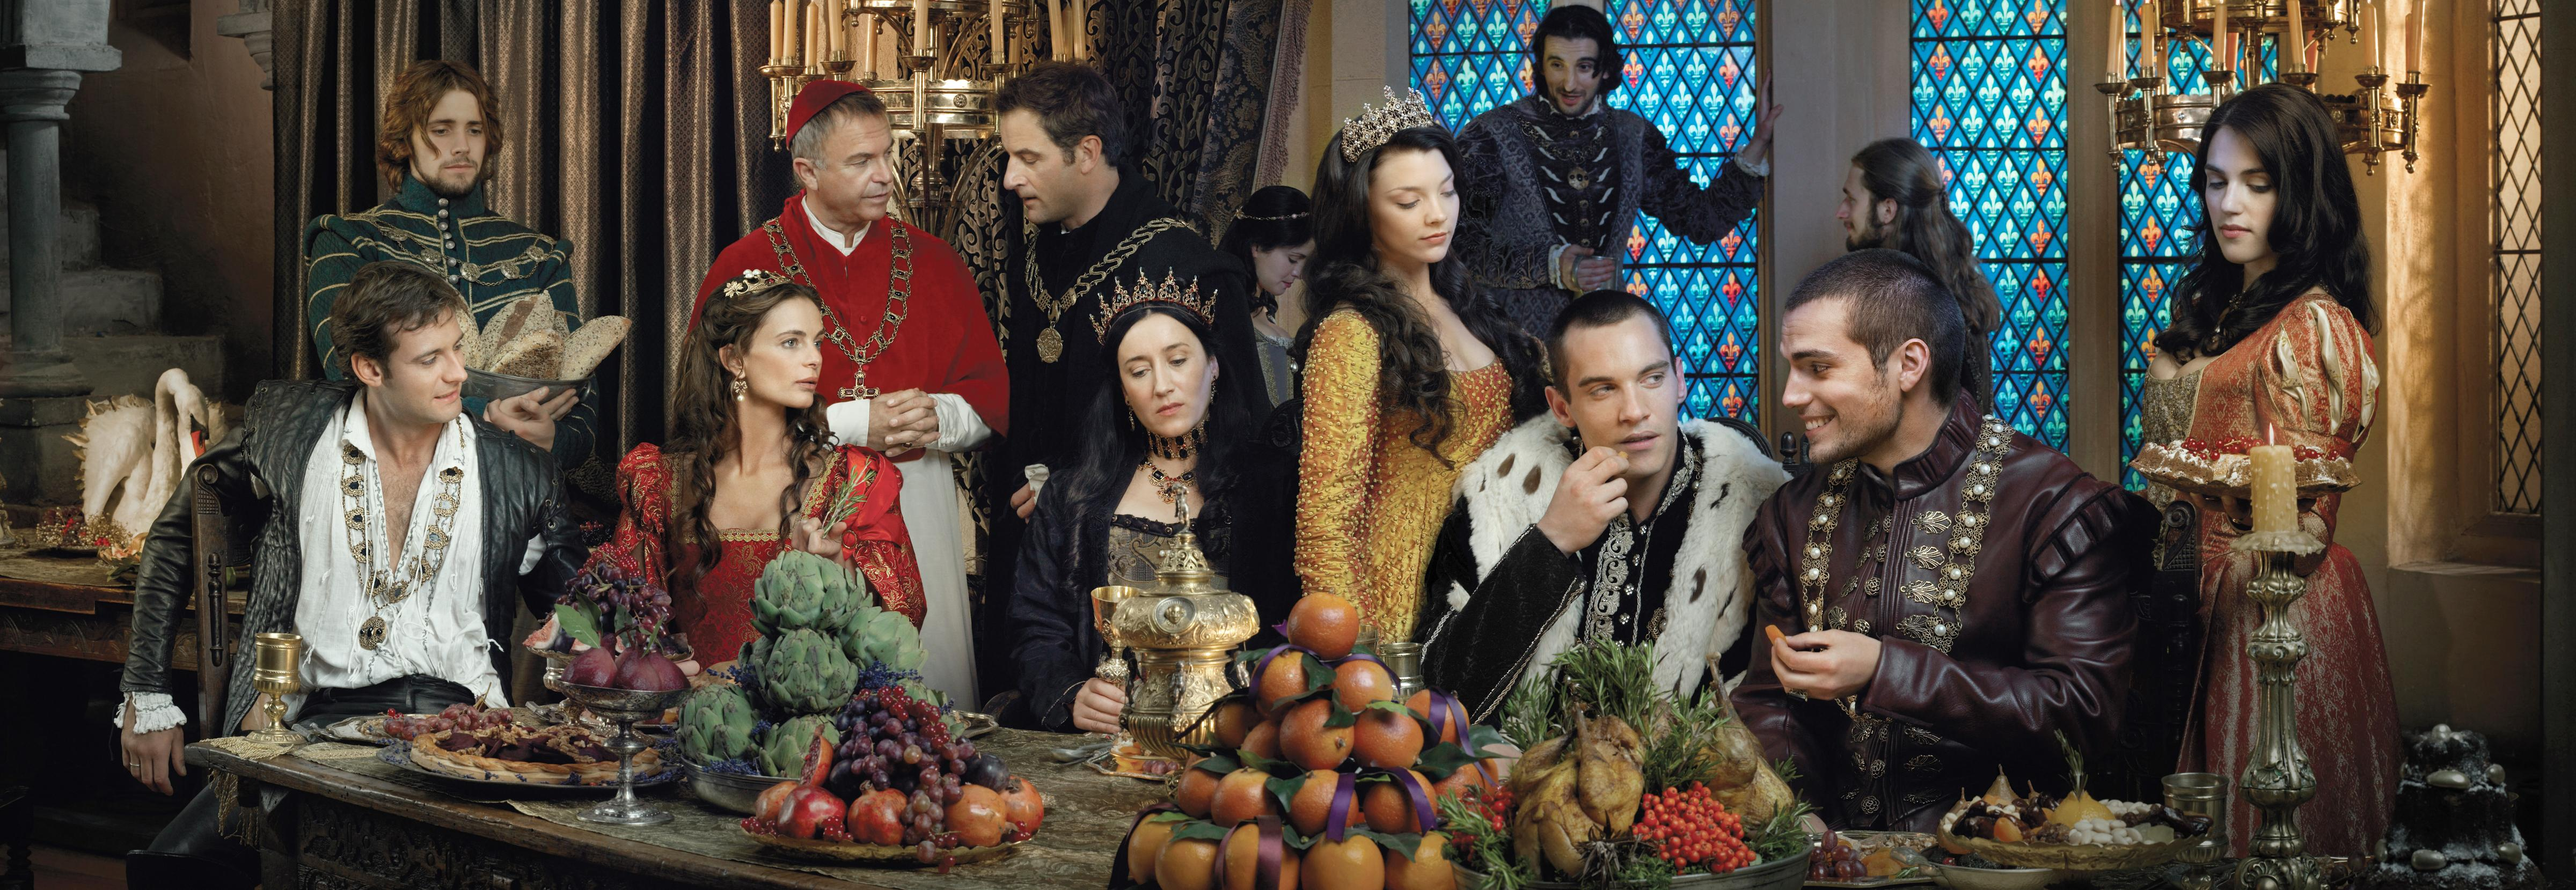 Sitting (left-right): Henry Cavill as Charles Brandon, Gabrielle Anwar as Princess Margaret, Queen Katherine as Maria Doyle Kennedy, Jonathan Rhys Meyers as Henry VIII, and Callum Blue as Knivert. Standing (left-right): Sam Neill as Cardinal Wolsey, Jeremy Northam as Sir Thomas Moore and Natalie Dormer as Anne Boleyn - Photo: Francois Rousseau/Showtime - Photo ID: tudors-gal-bofintrigues_comp1